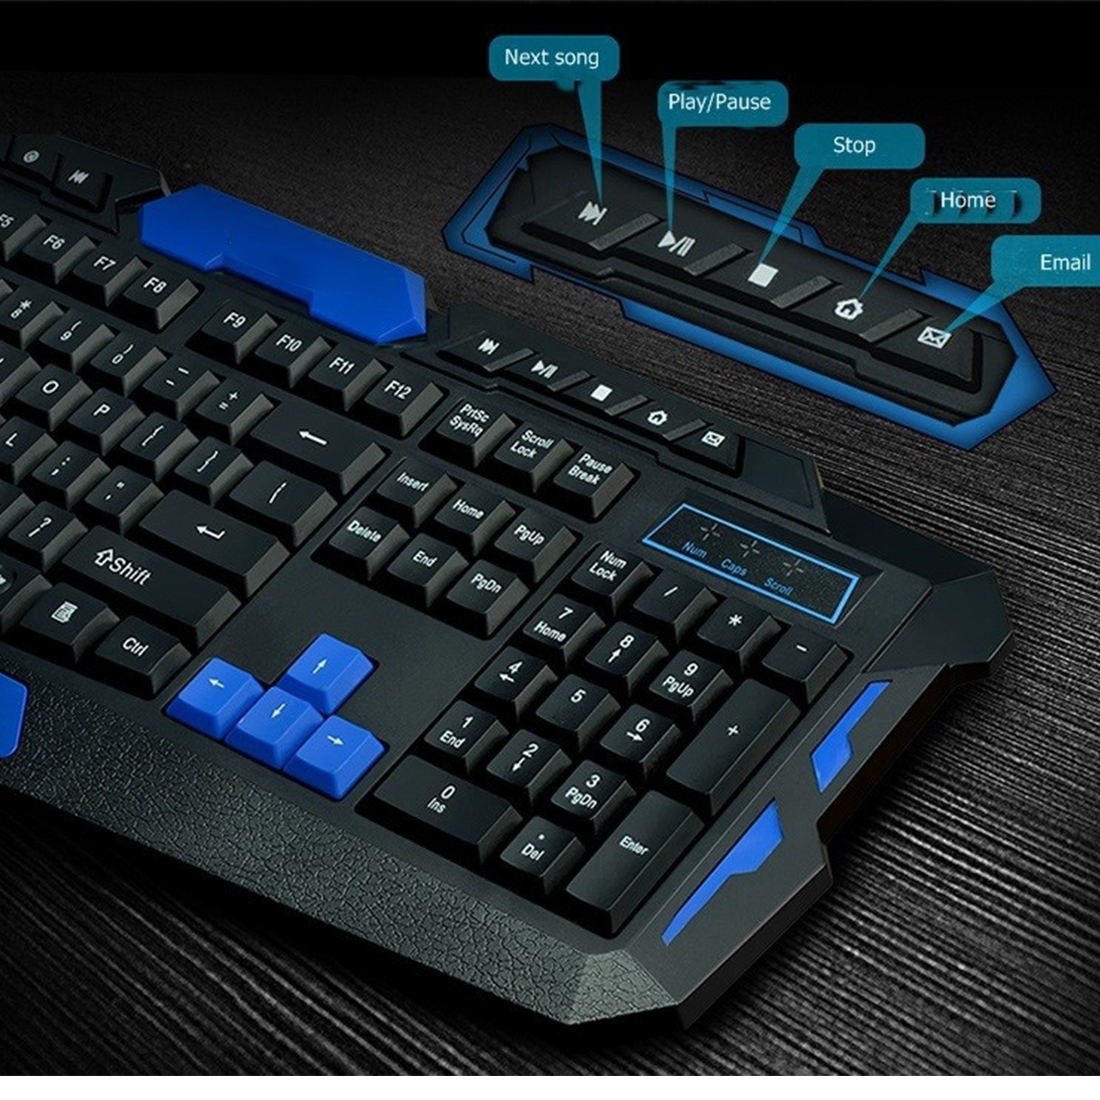 Etmakit New Wireless Keyboard Mouse Set Etmakit New Wireless Keyboard Mouse Set HTB1V3OoSVXXXXcKXVXXq6xXFXXX6